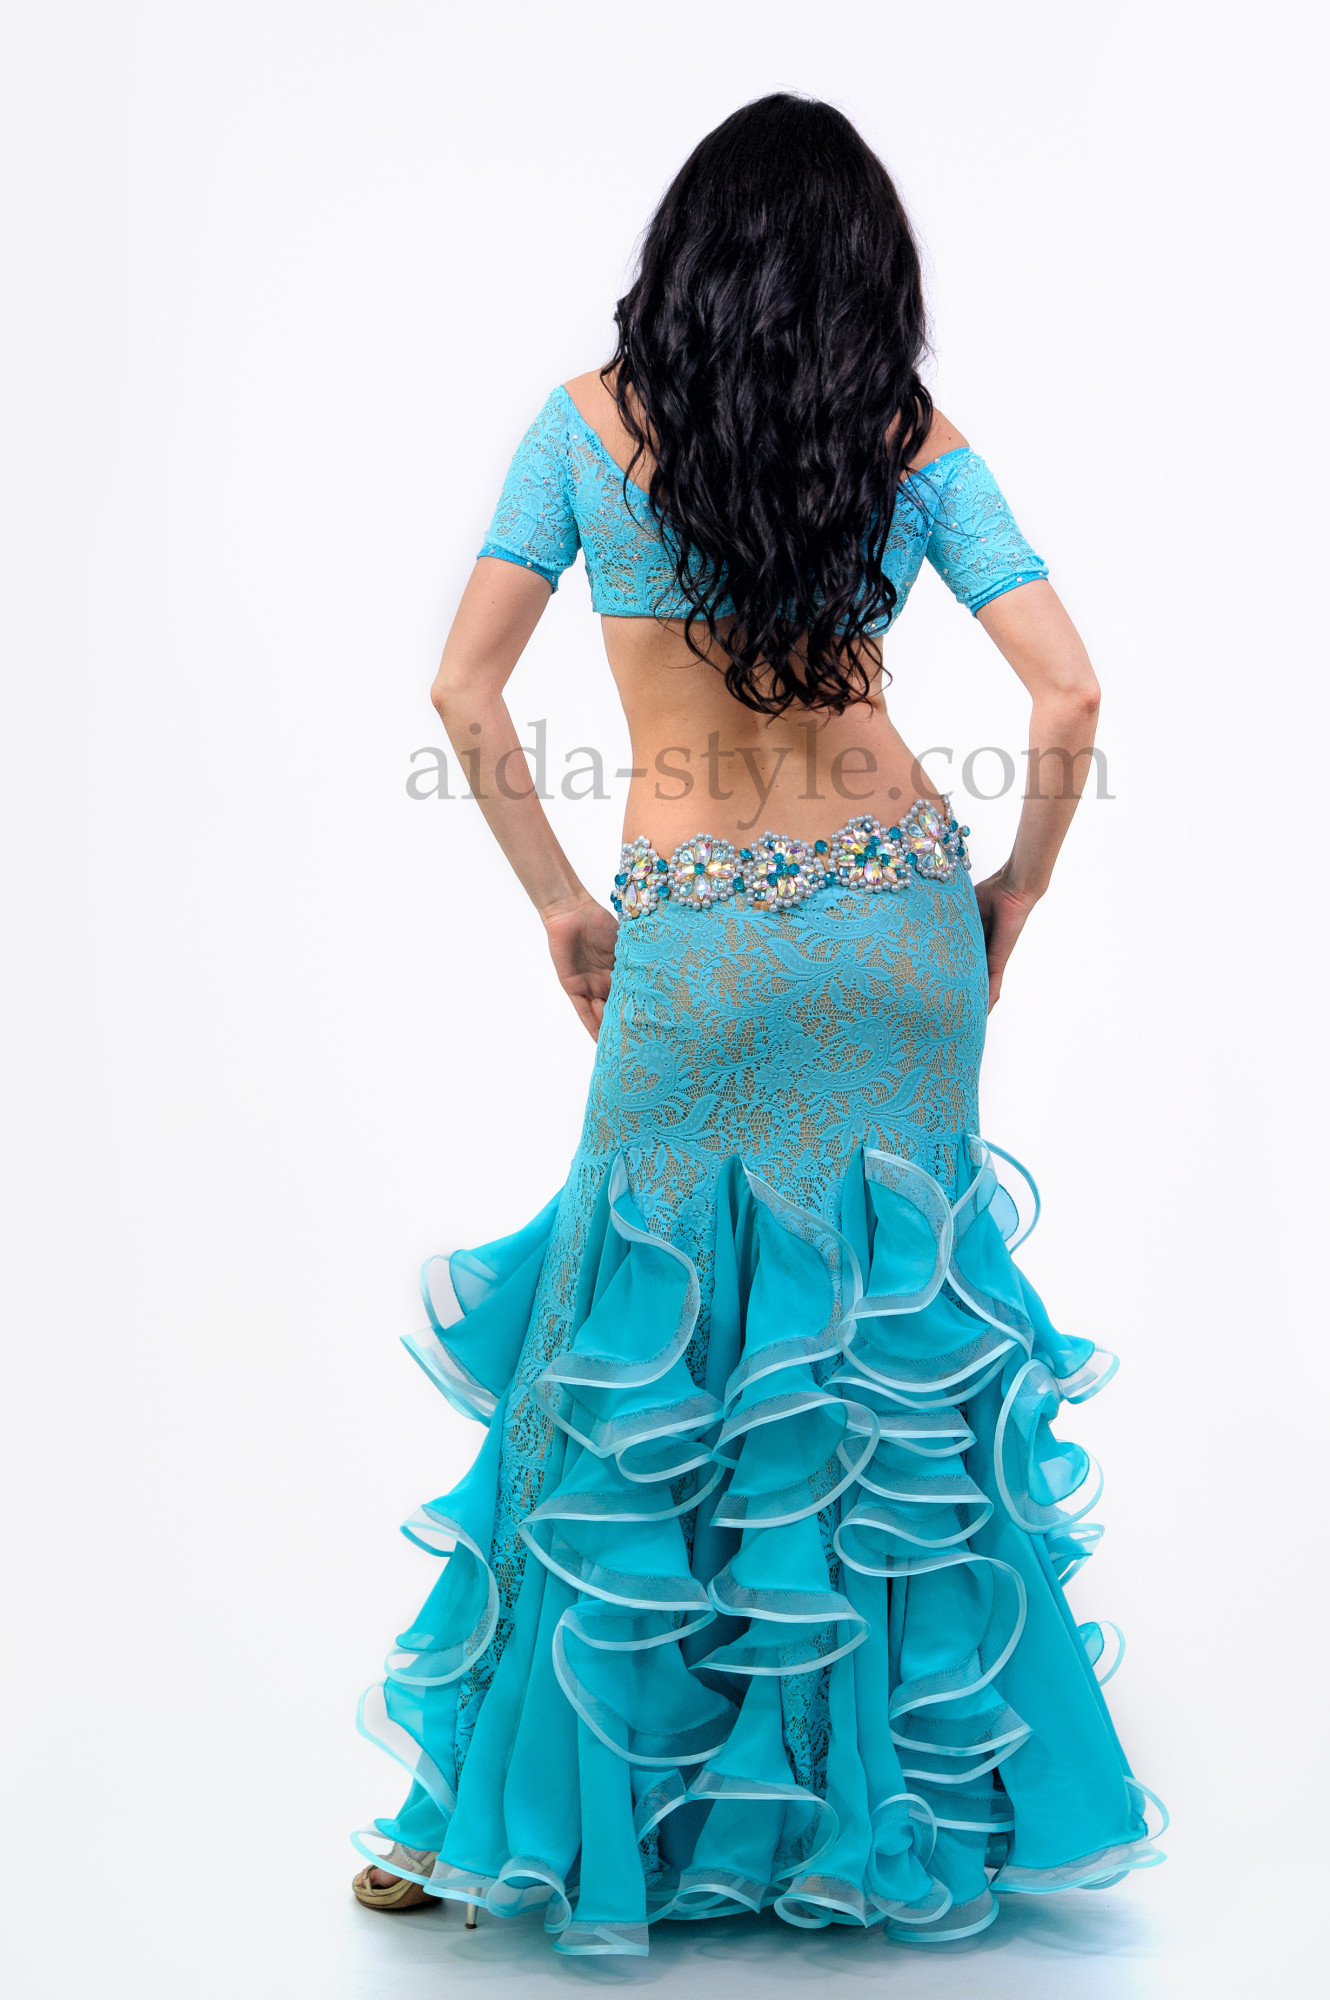 Beautiful blue professional belly dance dress with sleeves and ruffles on the skirt